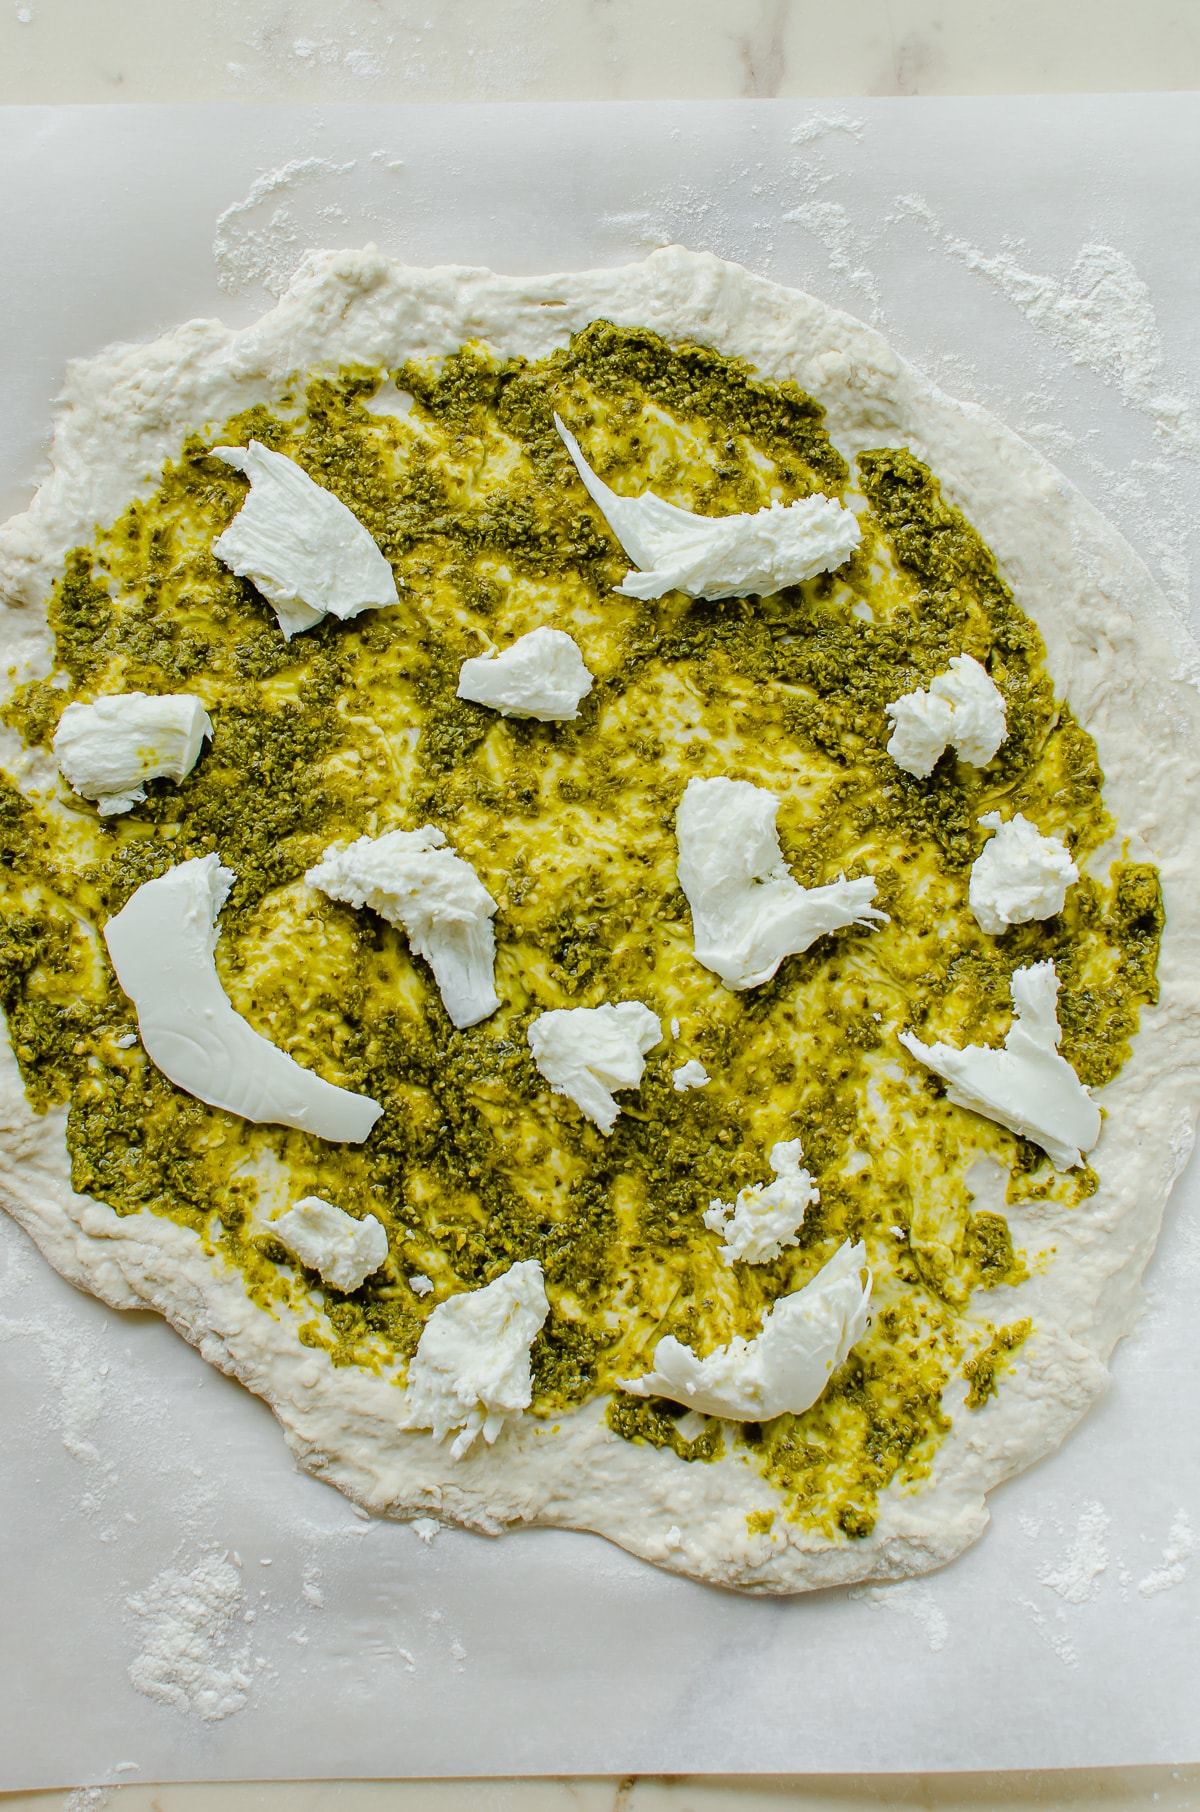 Pizza dough topped with pesto and fresh mozzarella.